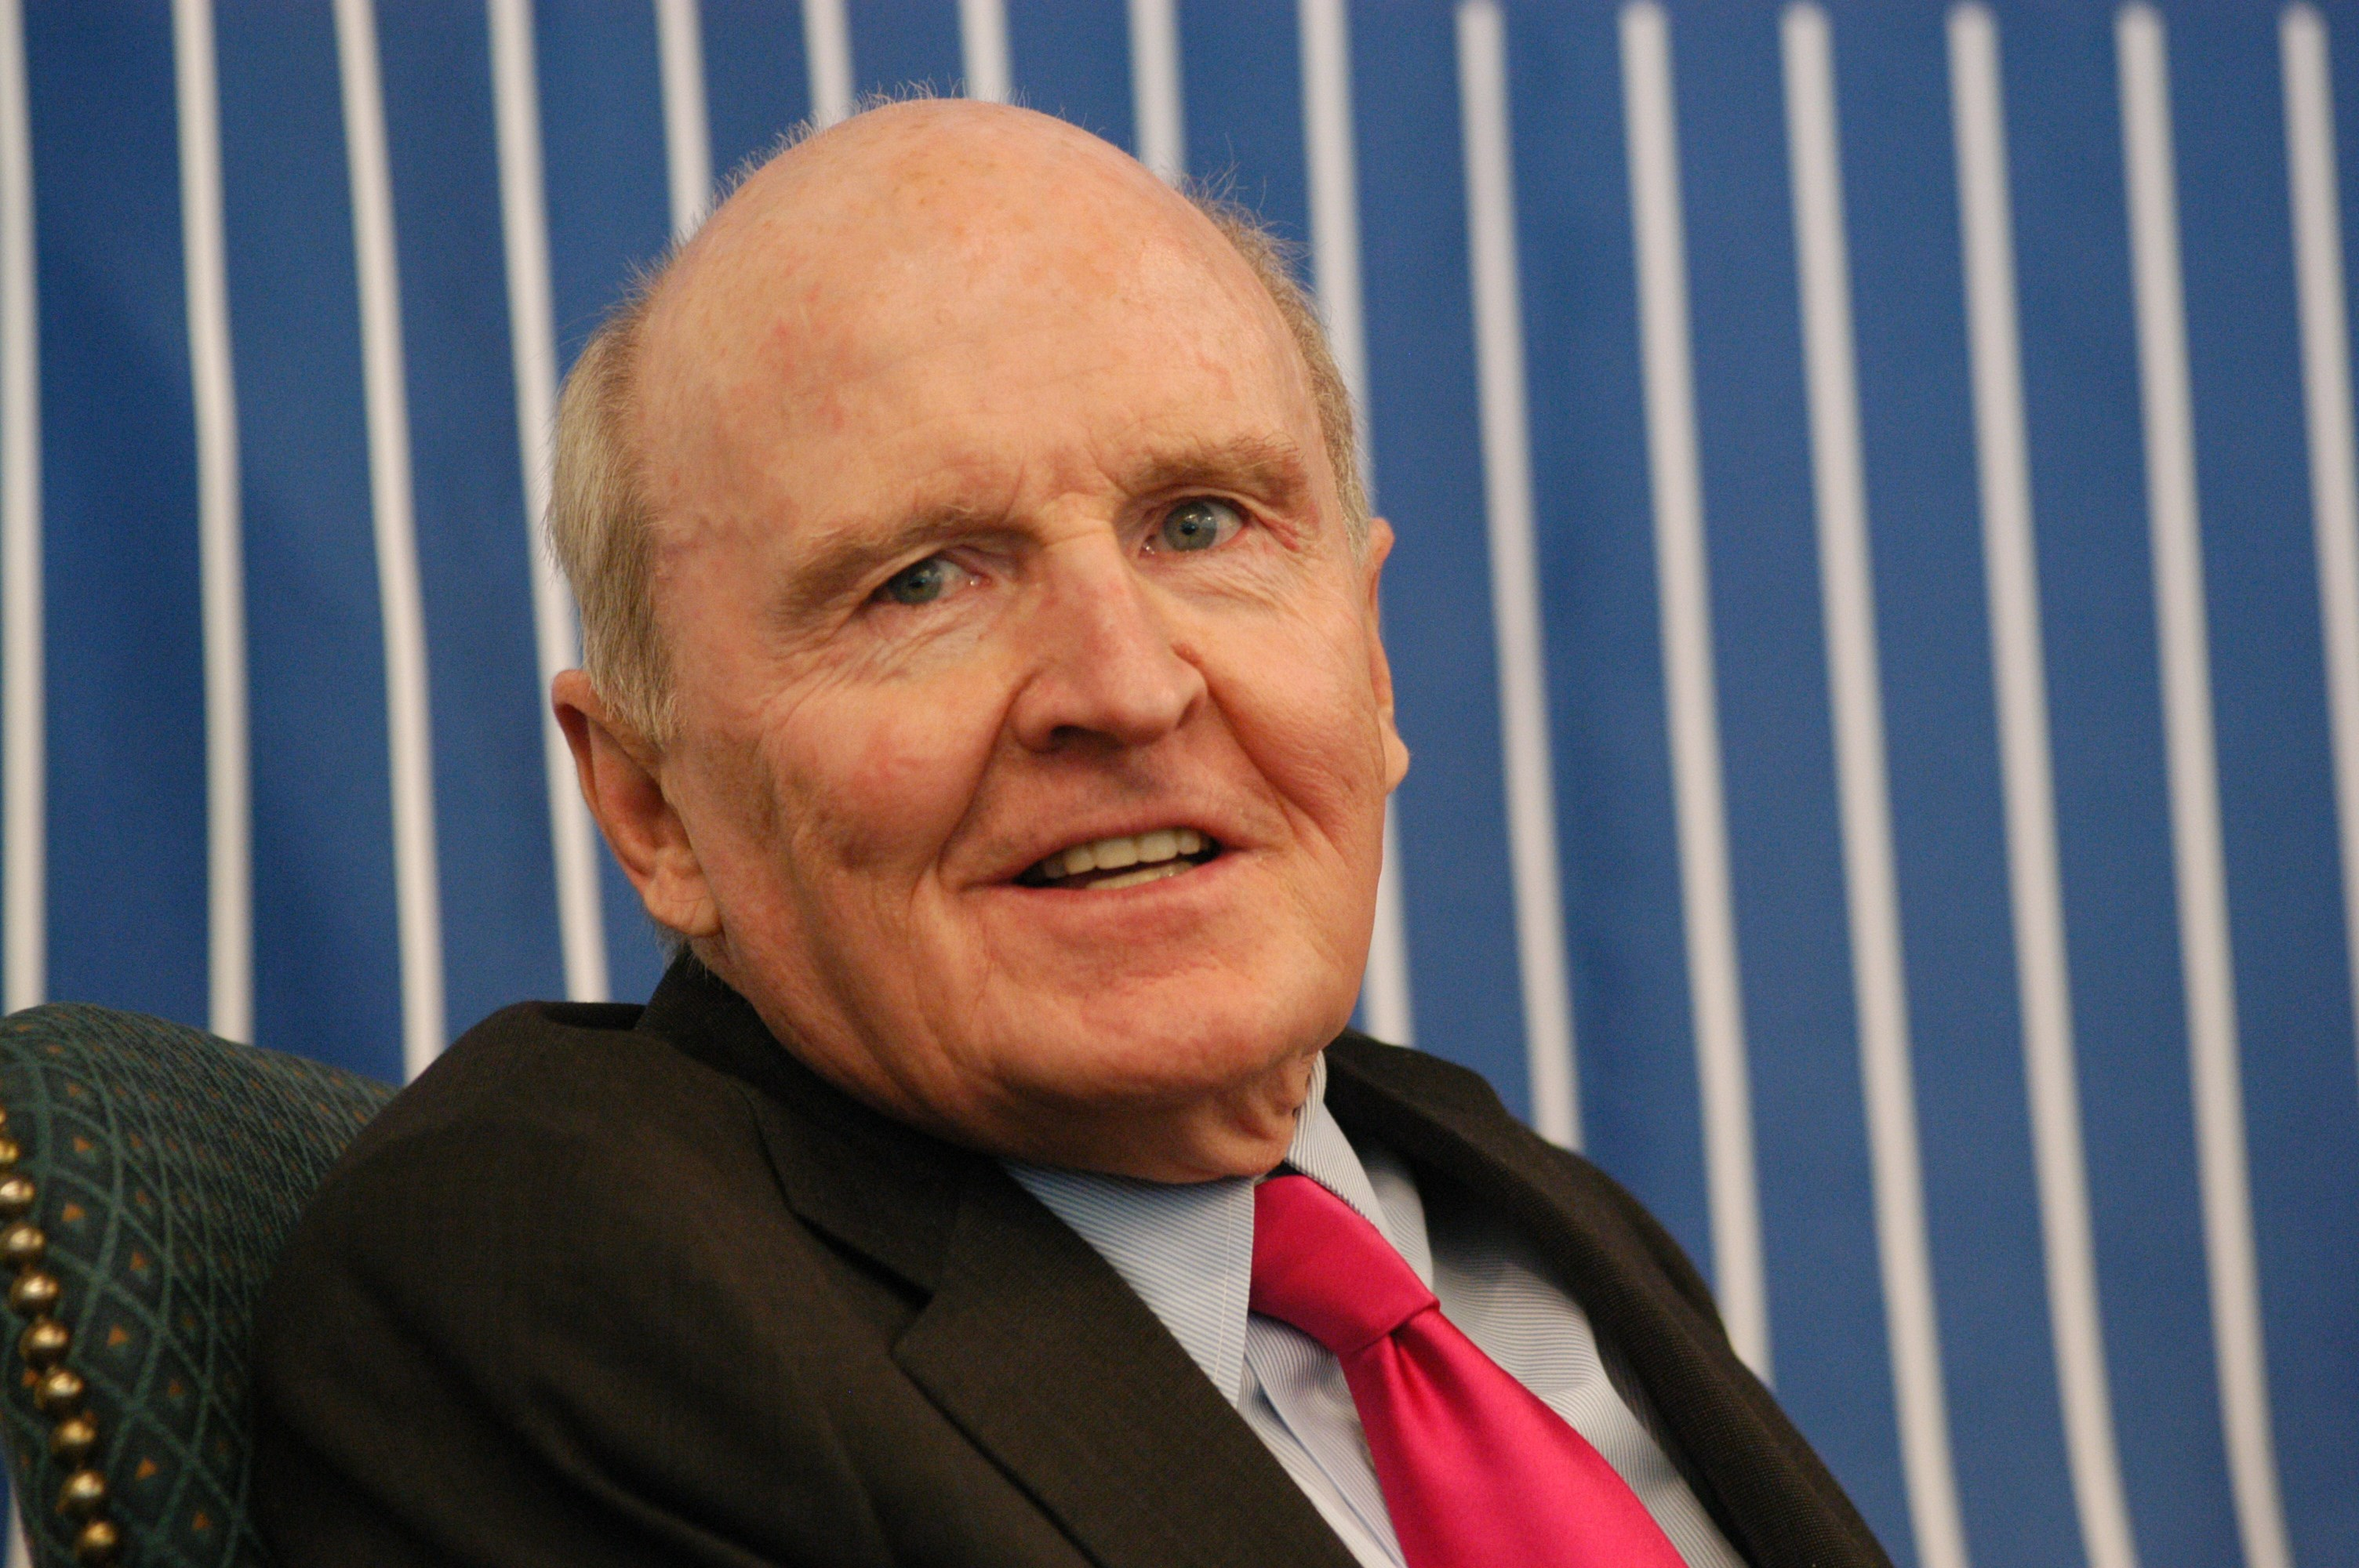 jack welch leading organizational change at ge Hbr - ge's two-decade transformation: jack welch's leadership dawn davis california baptist university professor putulowski 18 october 2014 summary of backgrounds and facts jack welch introduced transformational leadership at general electric (ge.